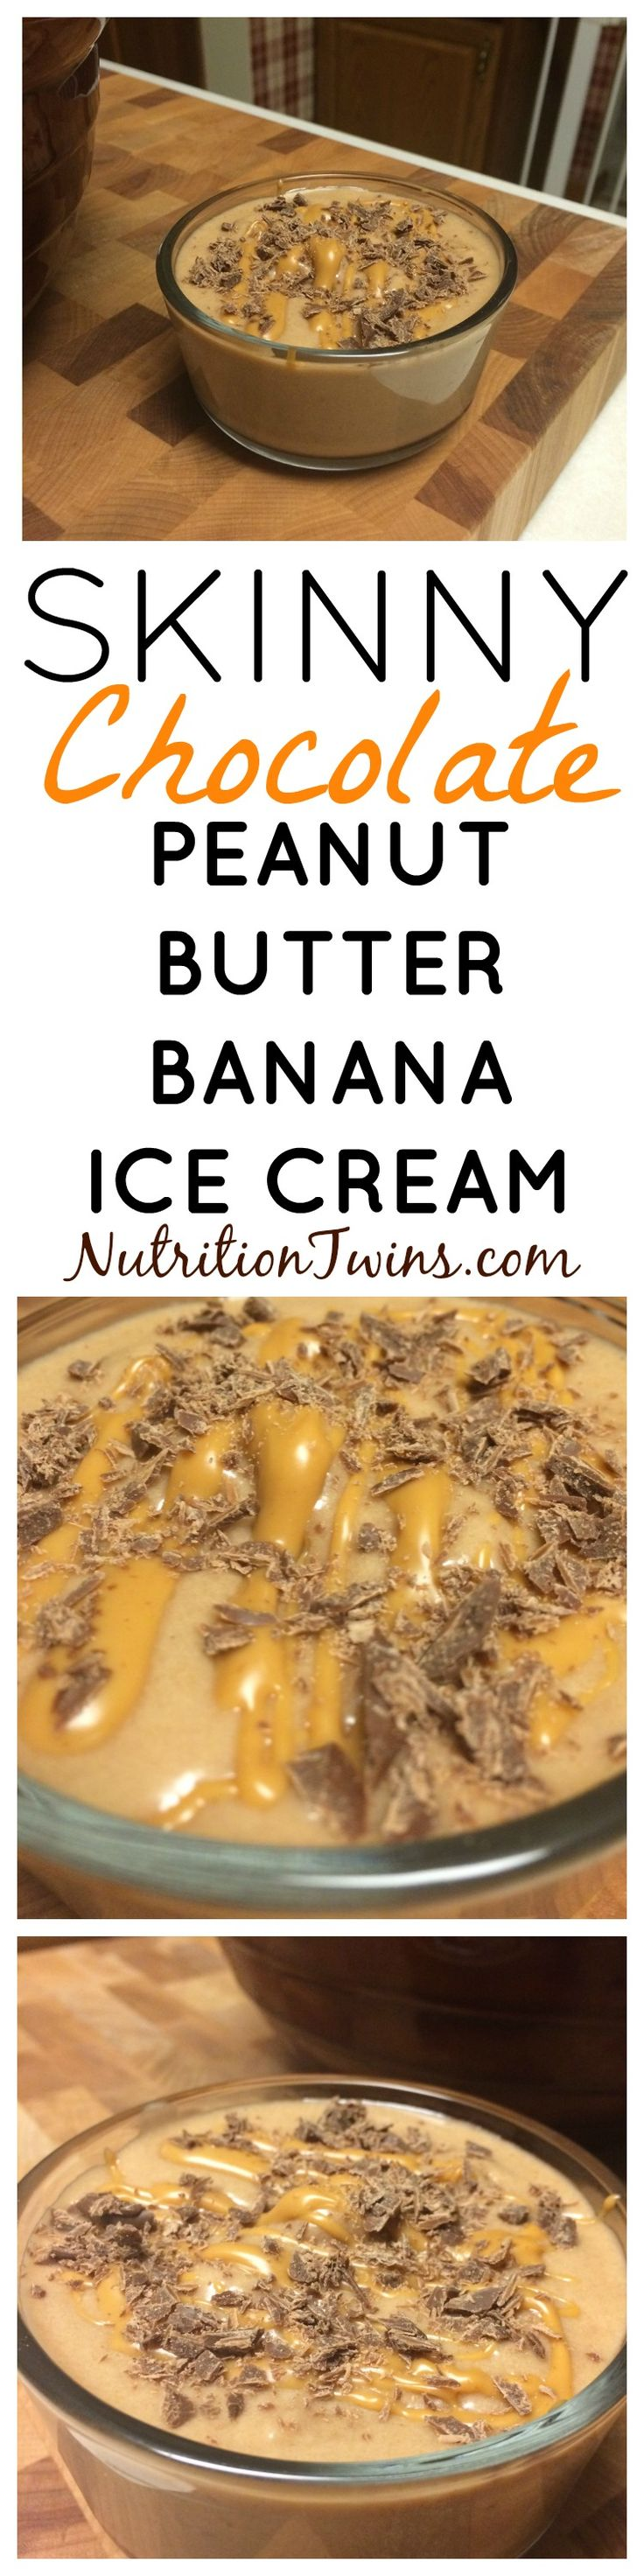 "Chocolate Peanut Butter Banana ""Ice Cream"" 